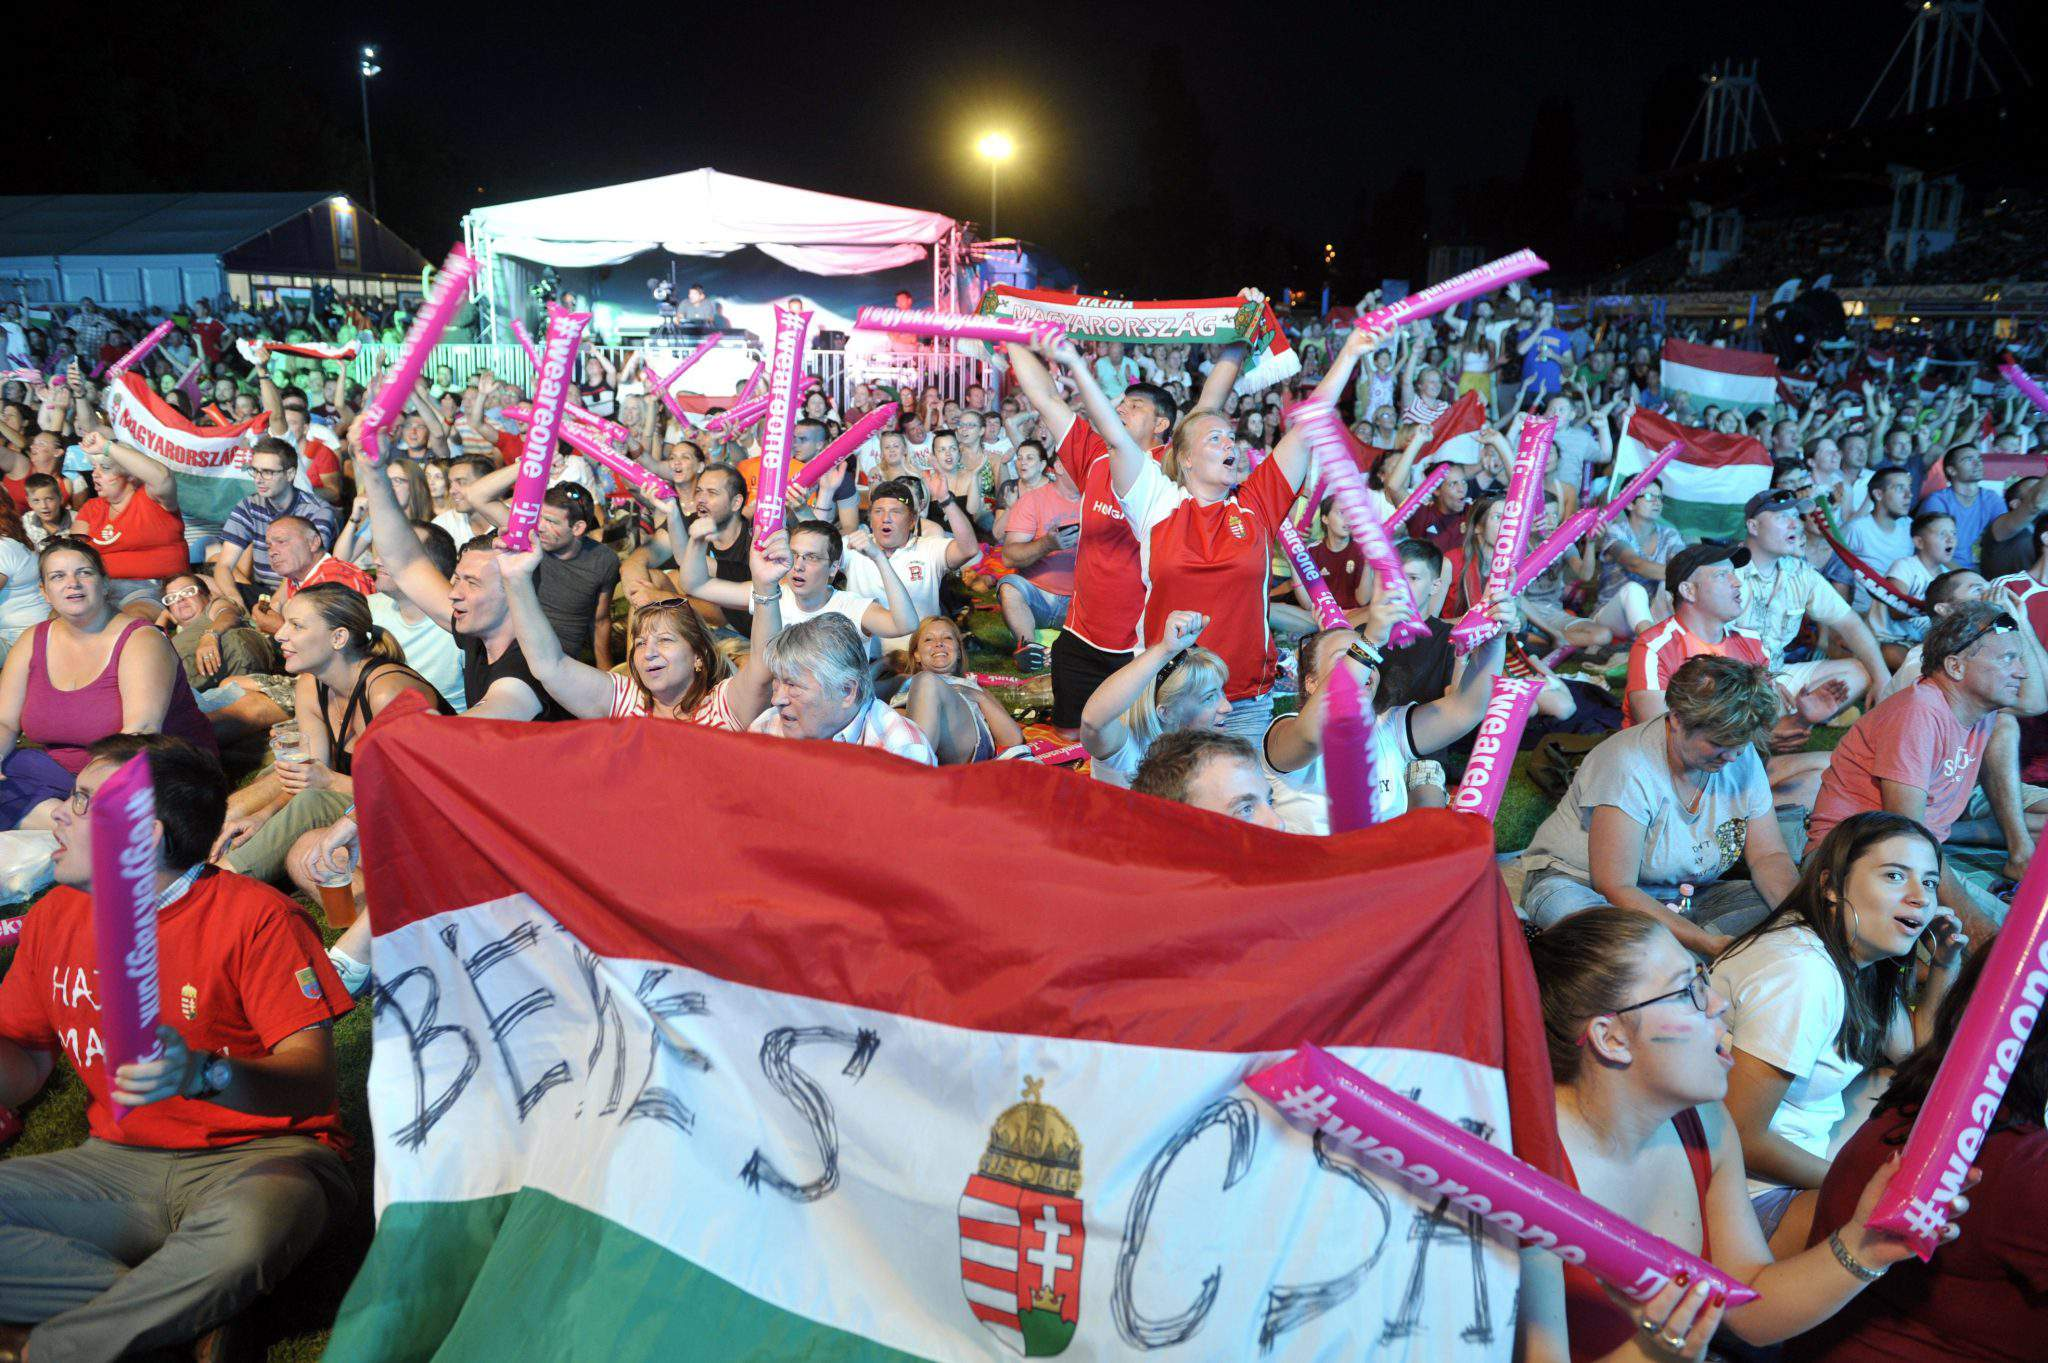 Four fifths of Hungarians say hosting world aquatics championships was 'good idea'